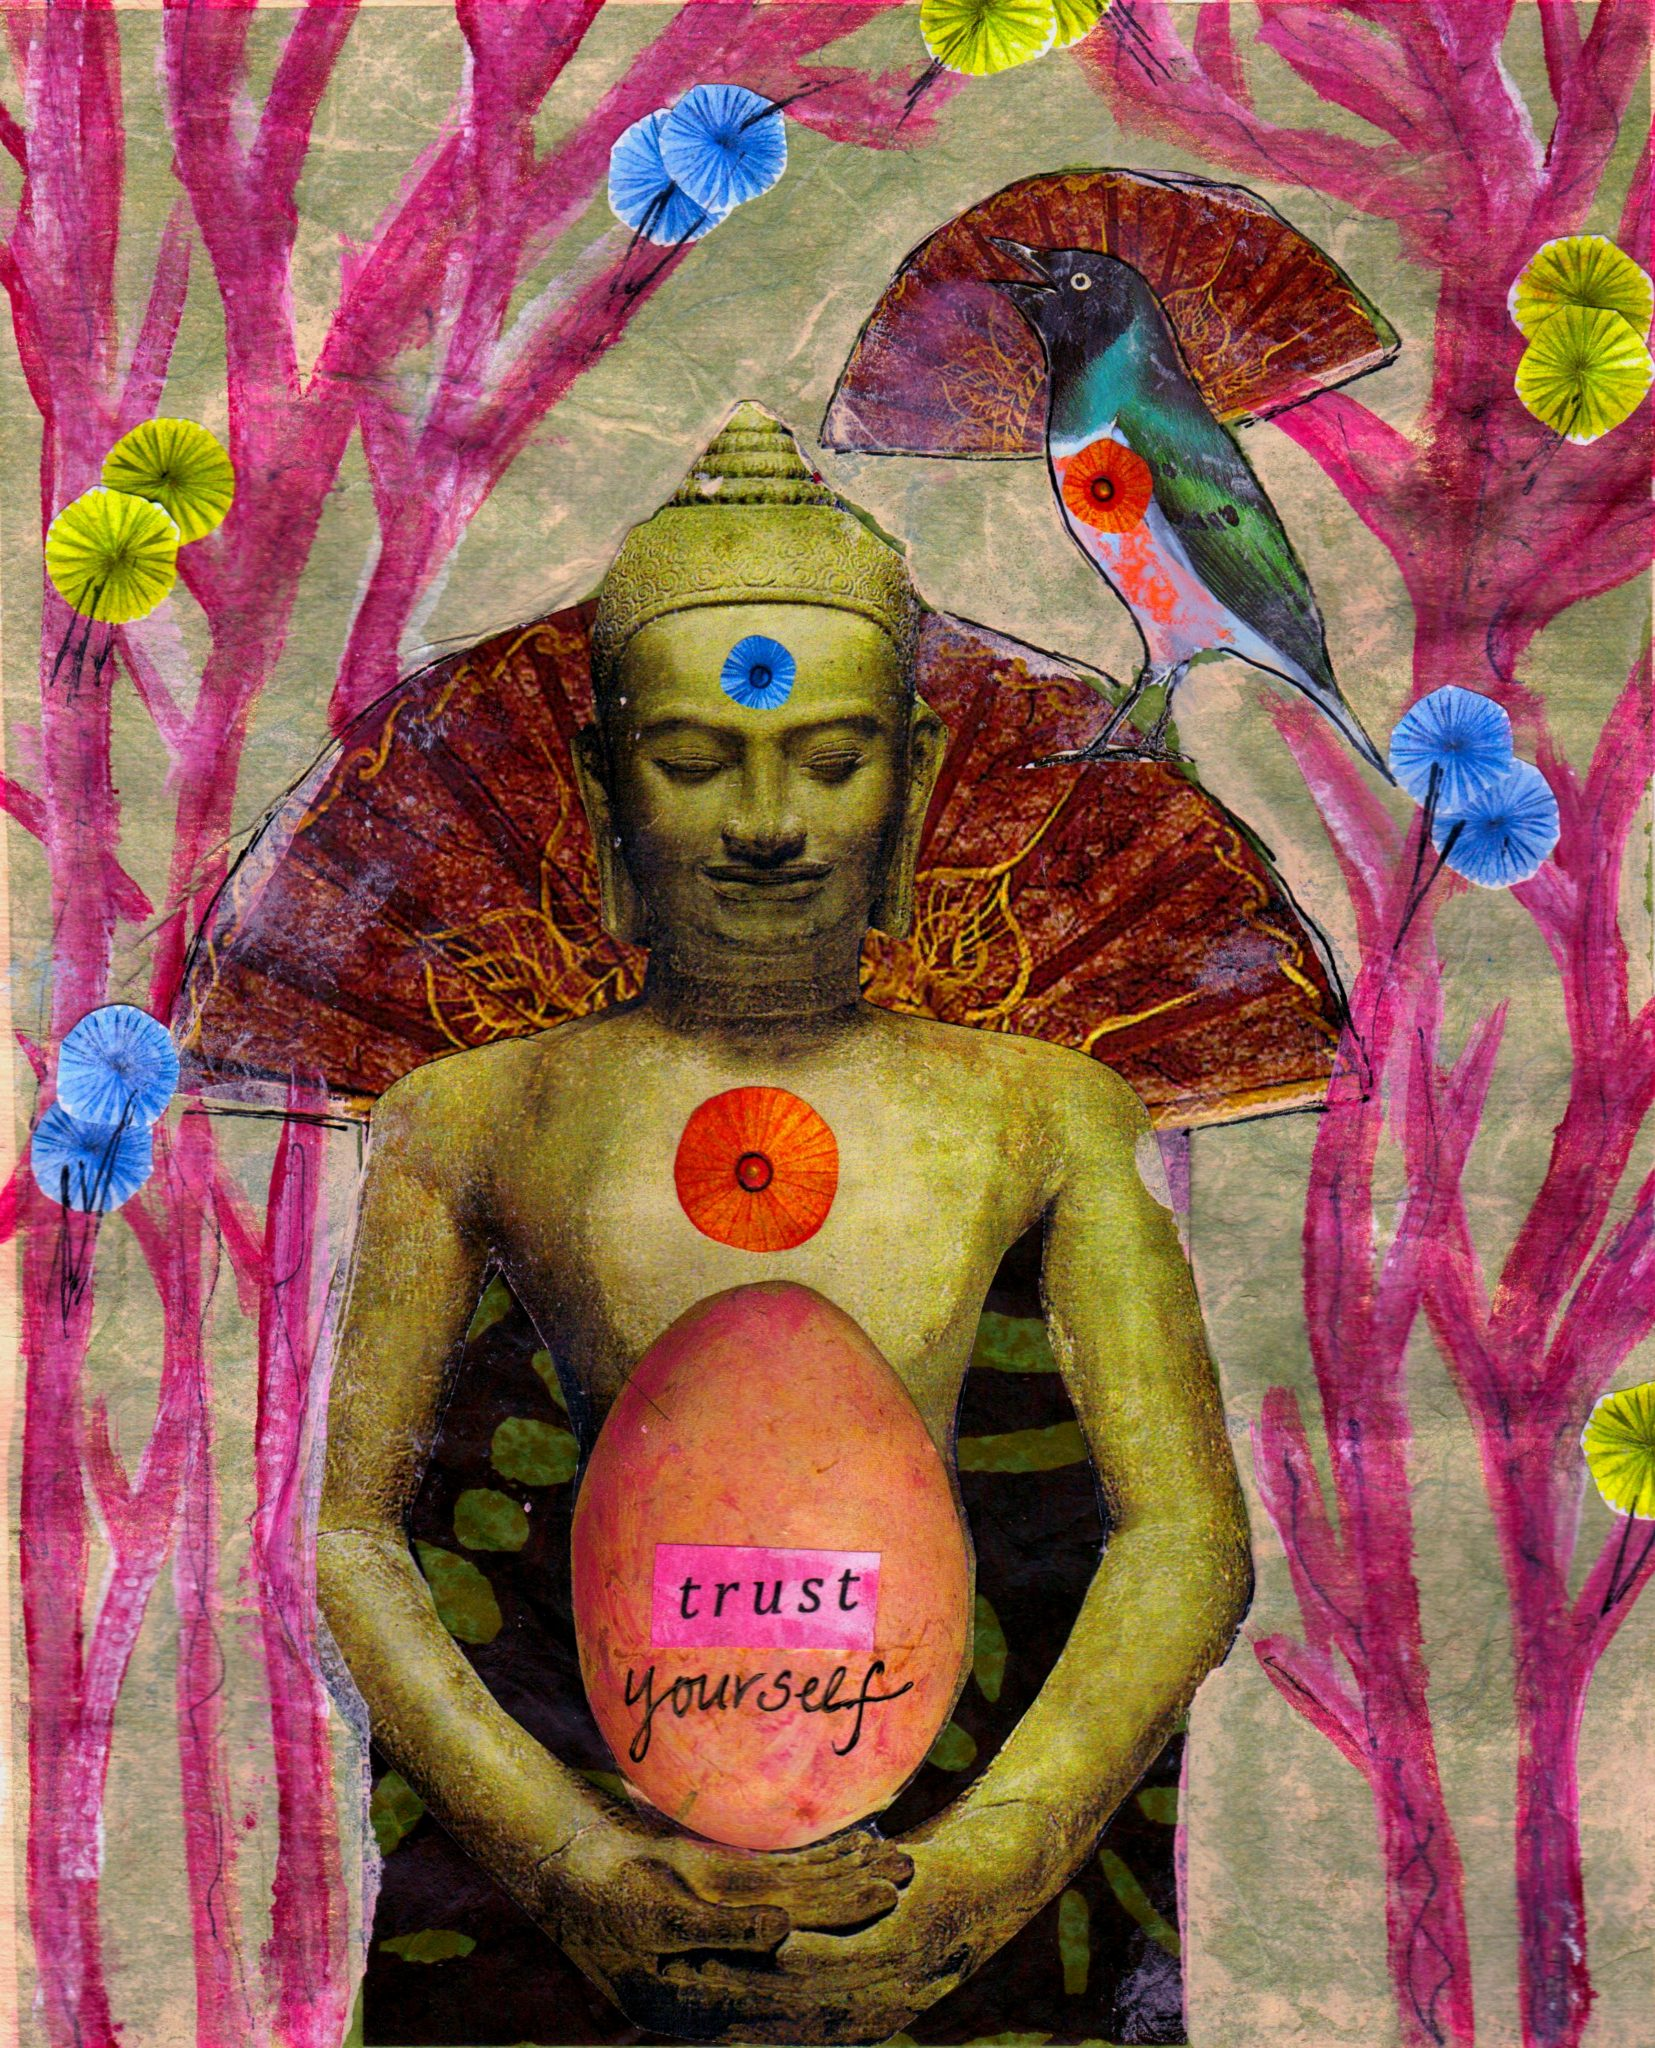 Trust Yourself, mixed media collage by Courtney Putnam